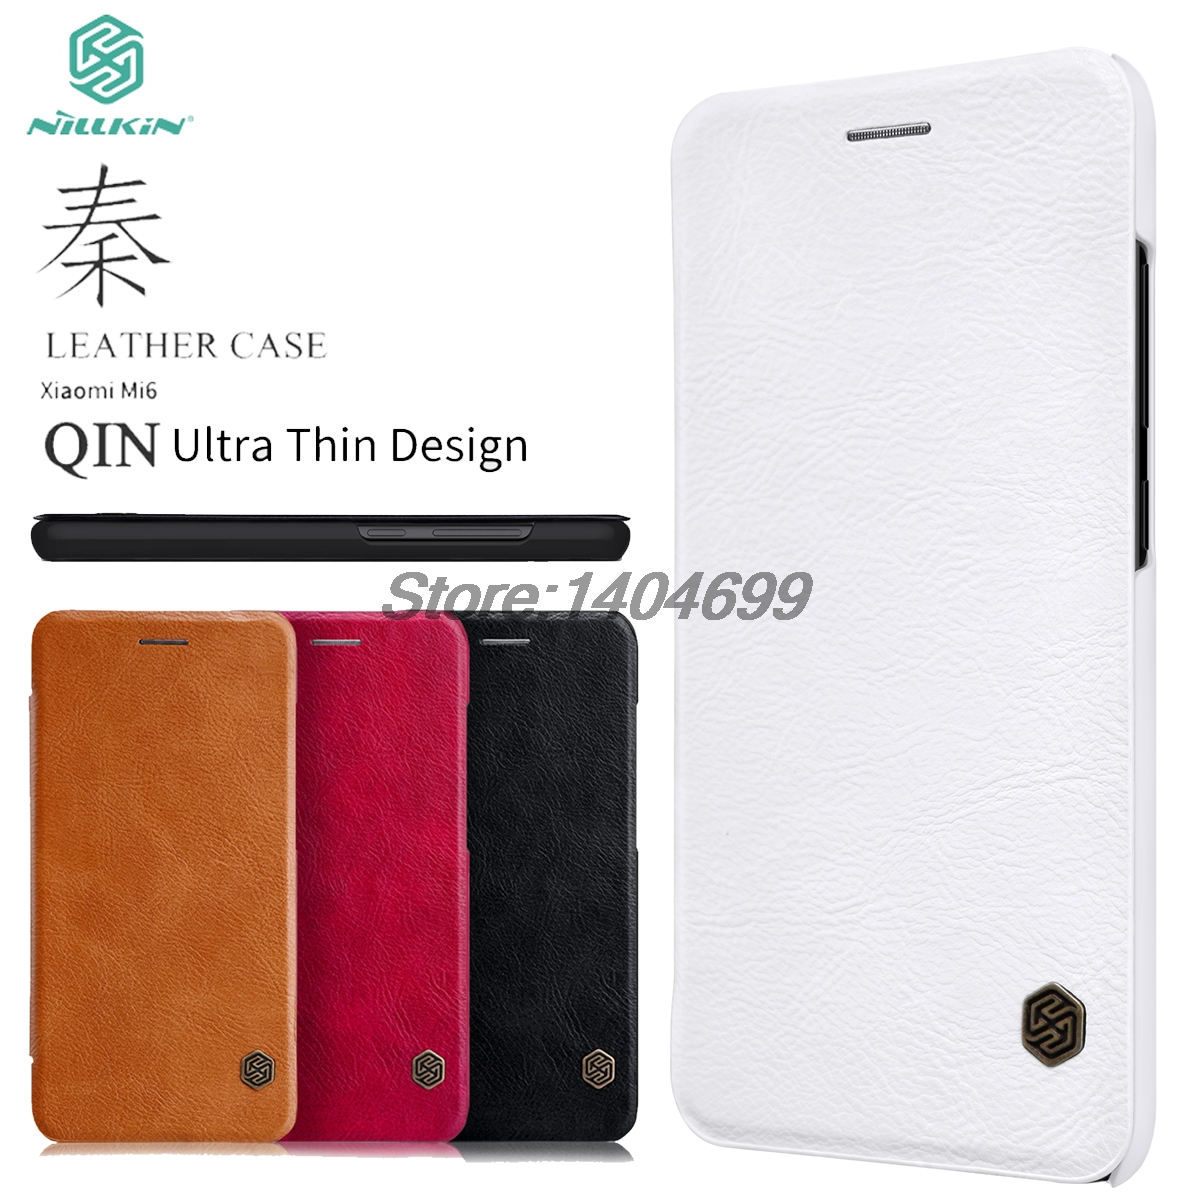 Xiaomi Mi6 Case Nillkin Qin Series PU Leather Cover Flip Case For Xiaomi Mi6 M6Xiaomi Mi6 Case Nillkin Qin Series PU Leather Cover Flip Case For Xiaomi Mi6 M6